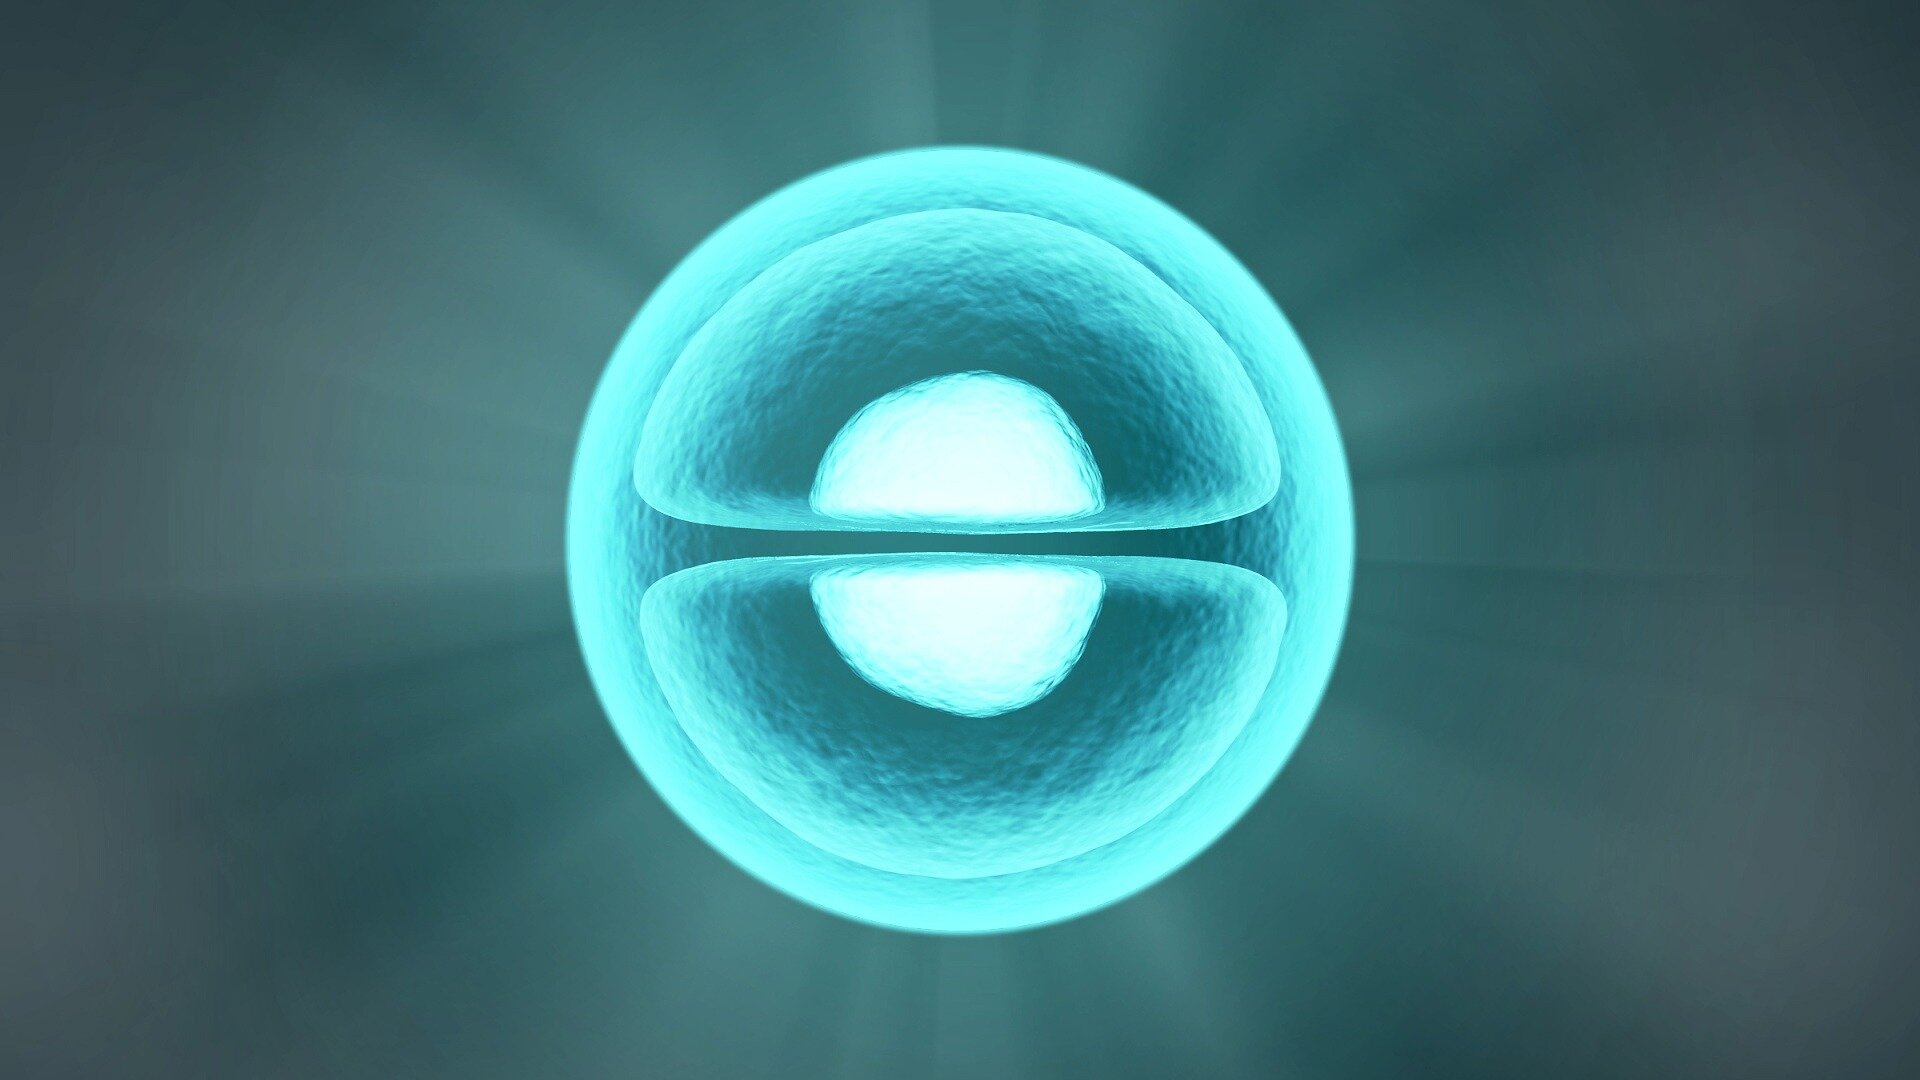 Bio-based membranes with ocular stem cells to treat corneal disorders